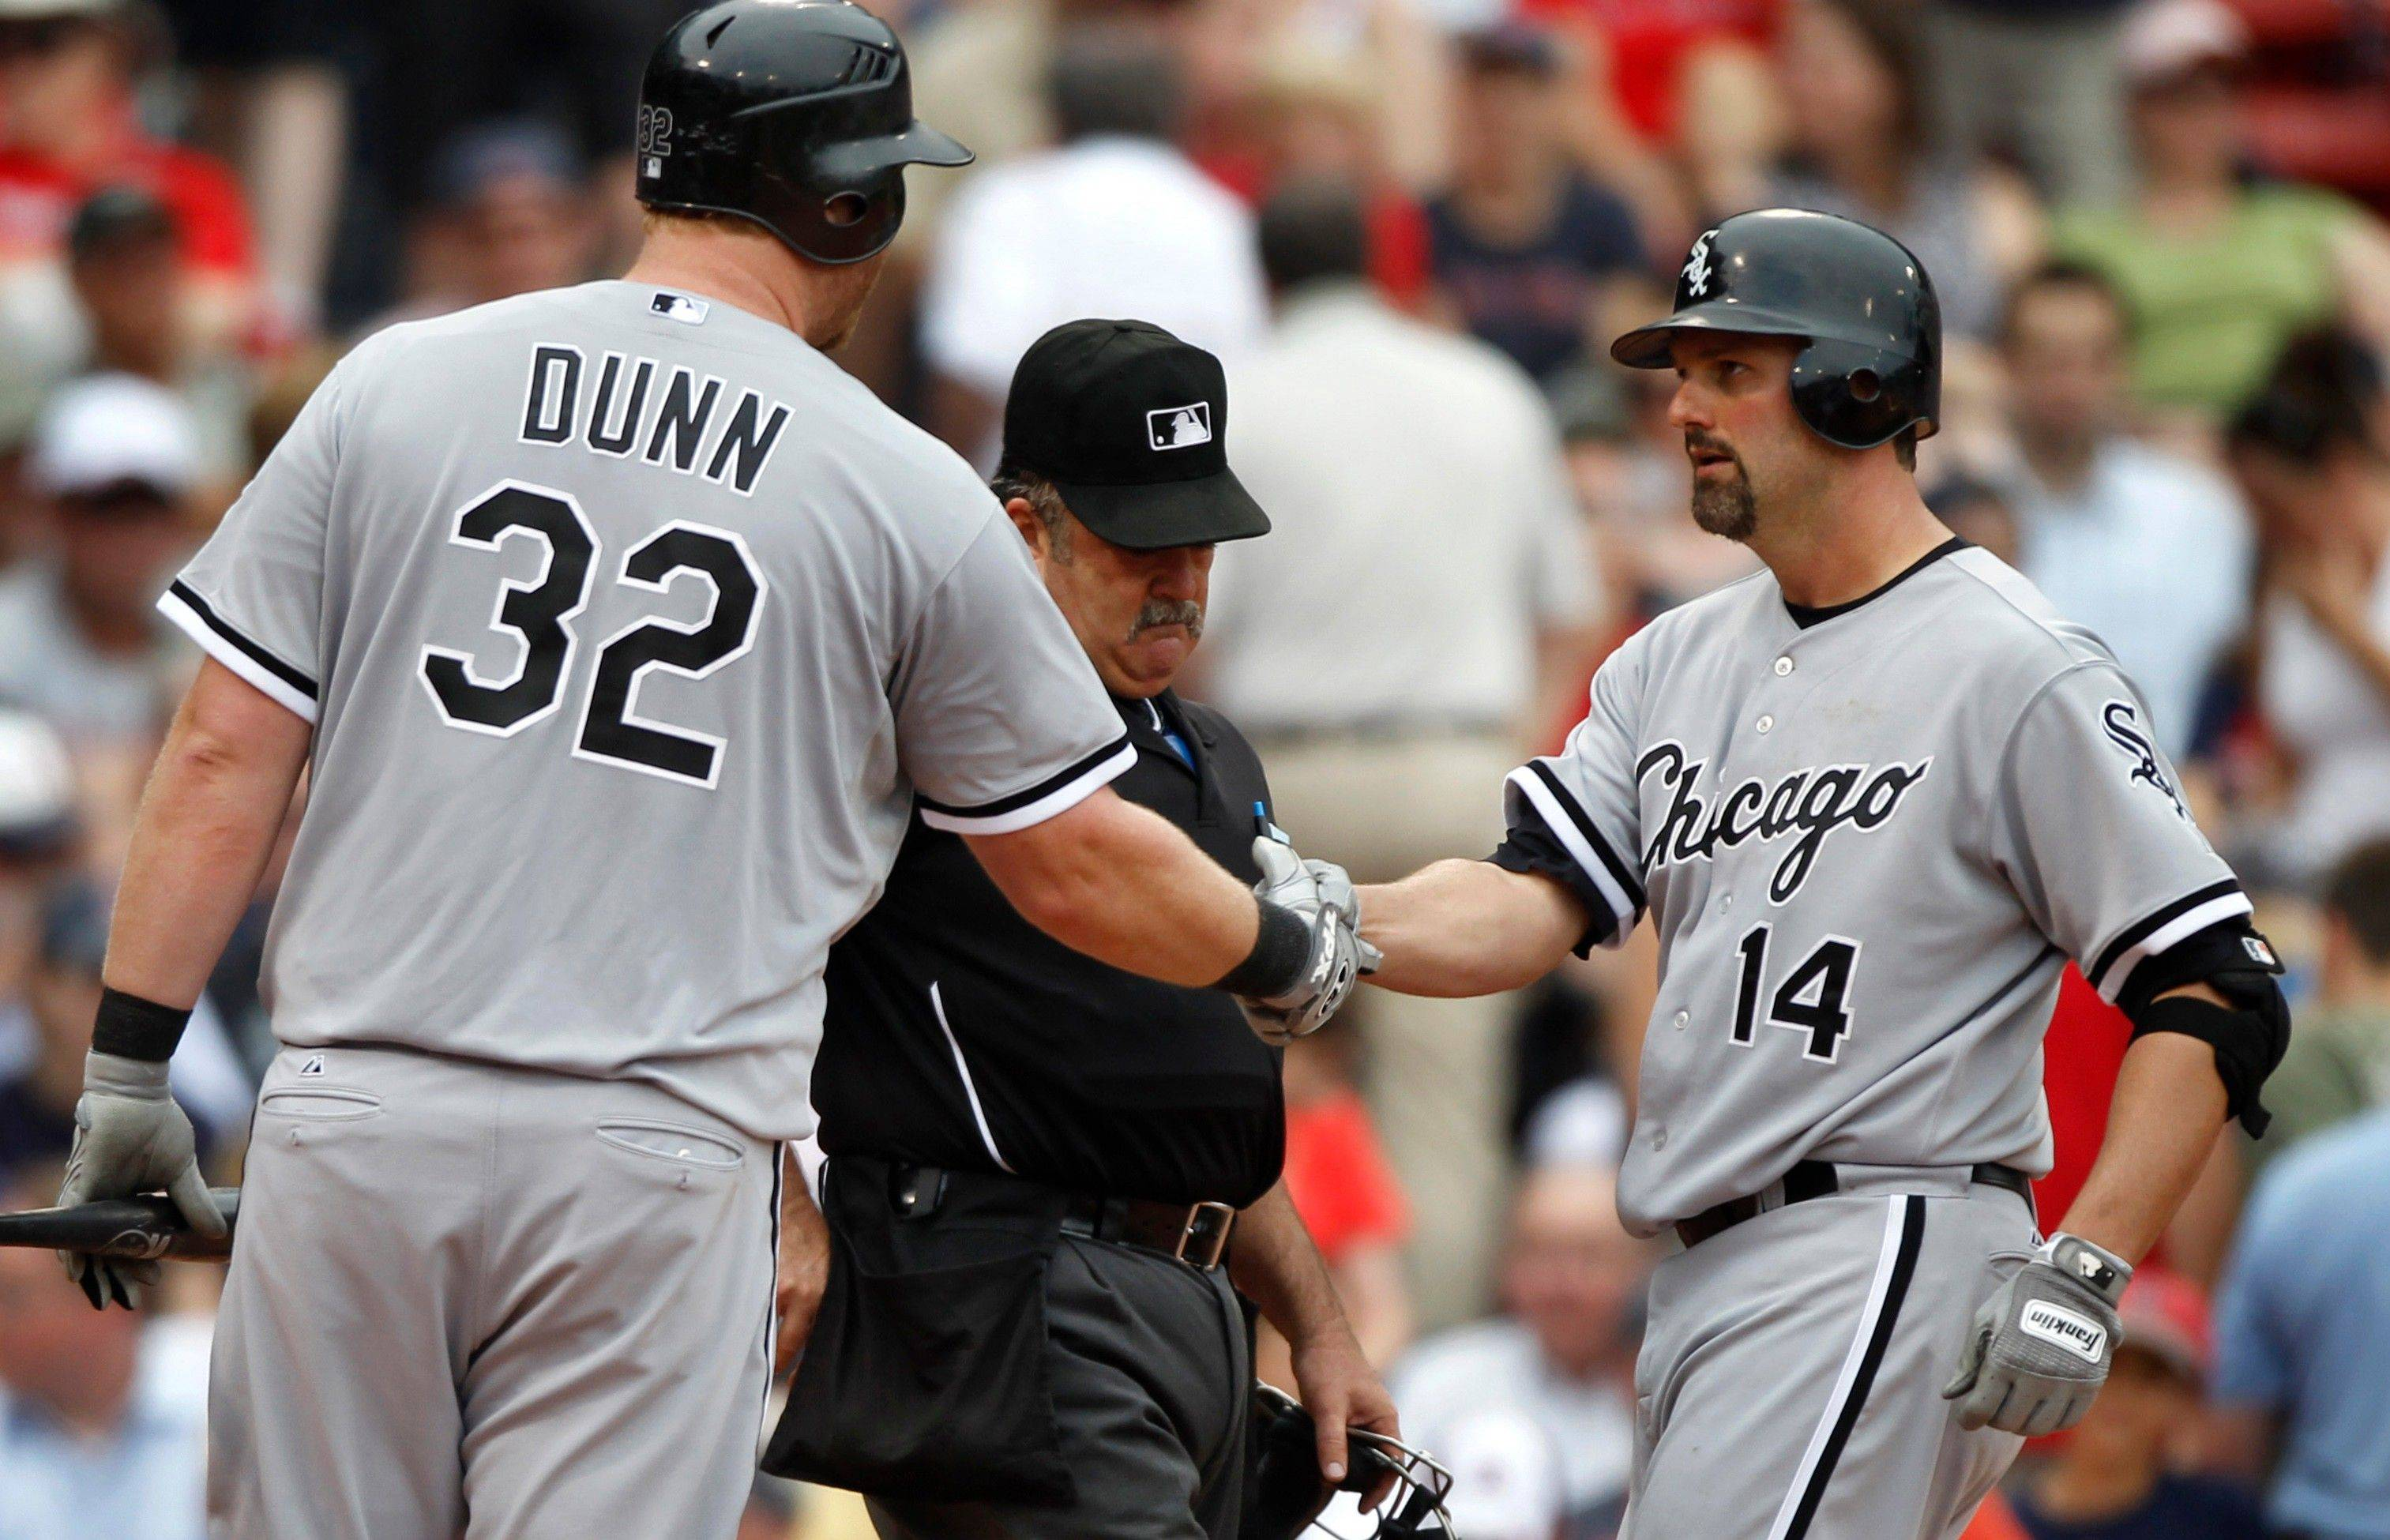 Adam Dunn, left, welcomes Paul Konerko at home plate after Konerko hit a 2-run home run off Red Sox closer Jonathan Papelbon in the ninth inning Wednesday at Fenway Park.